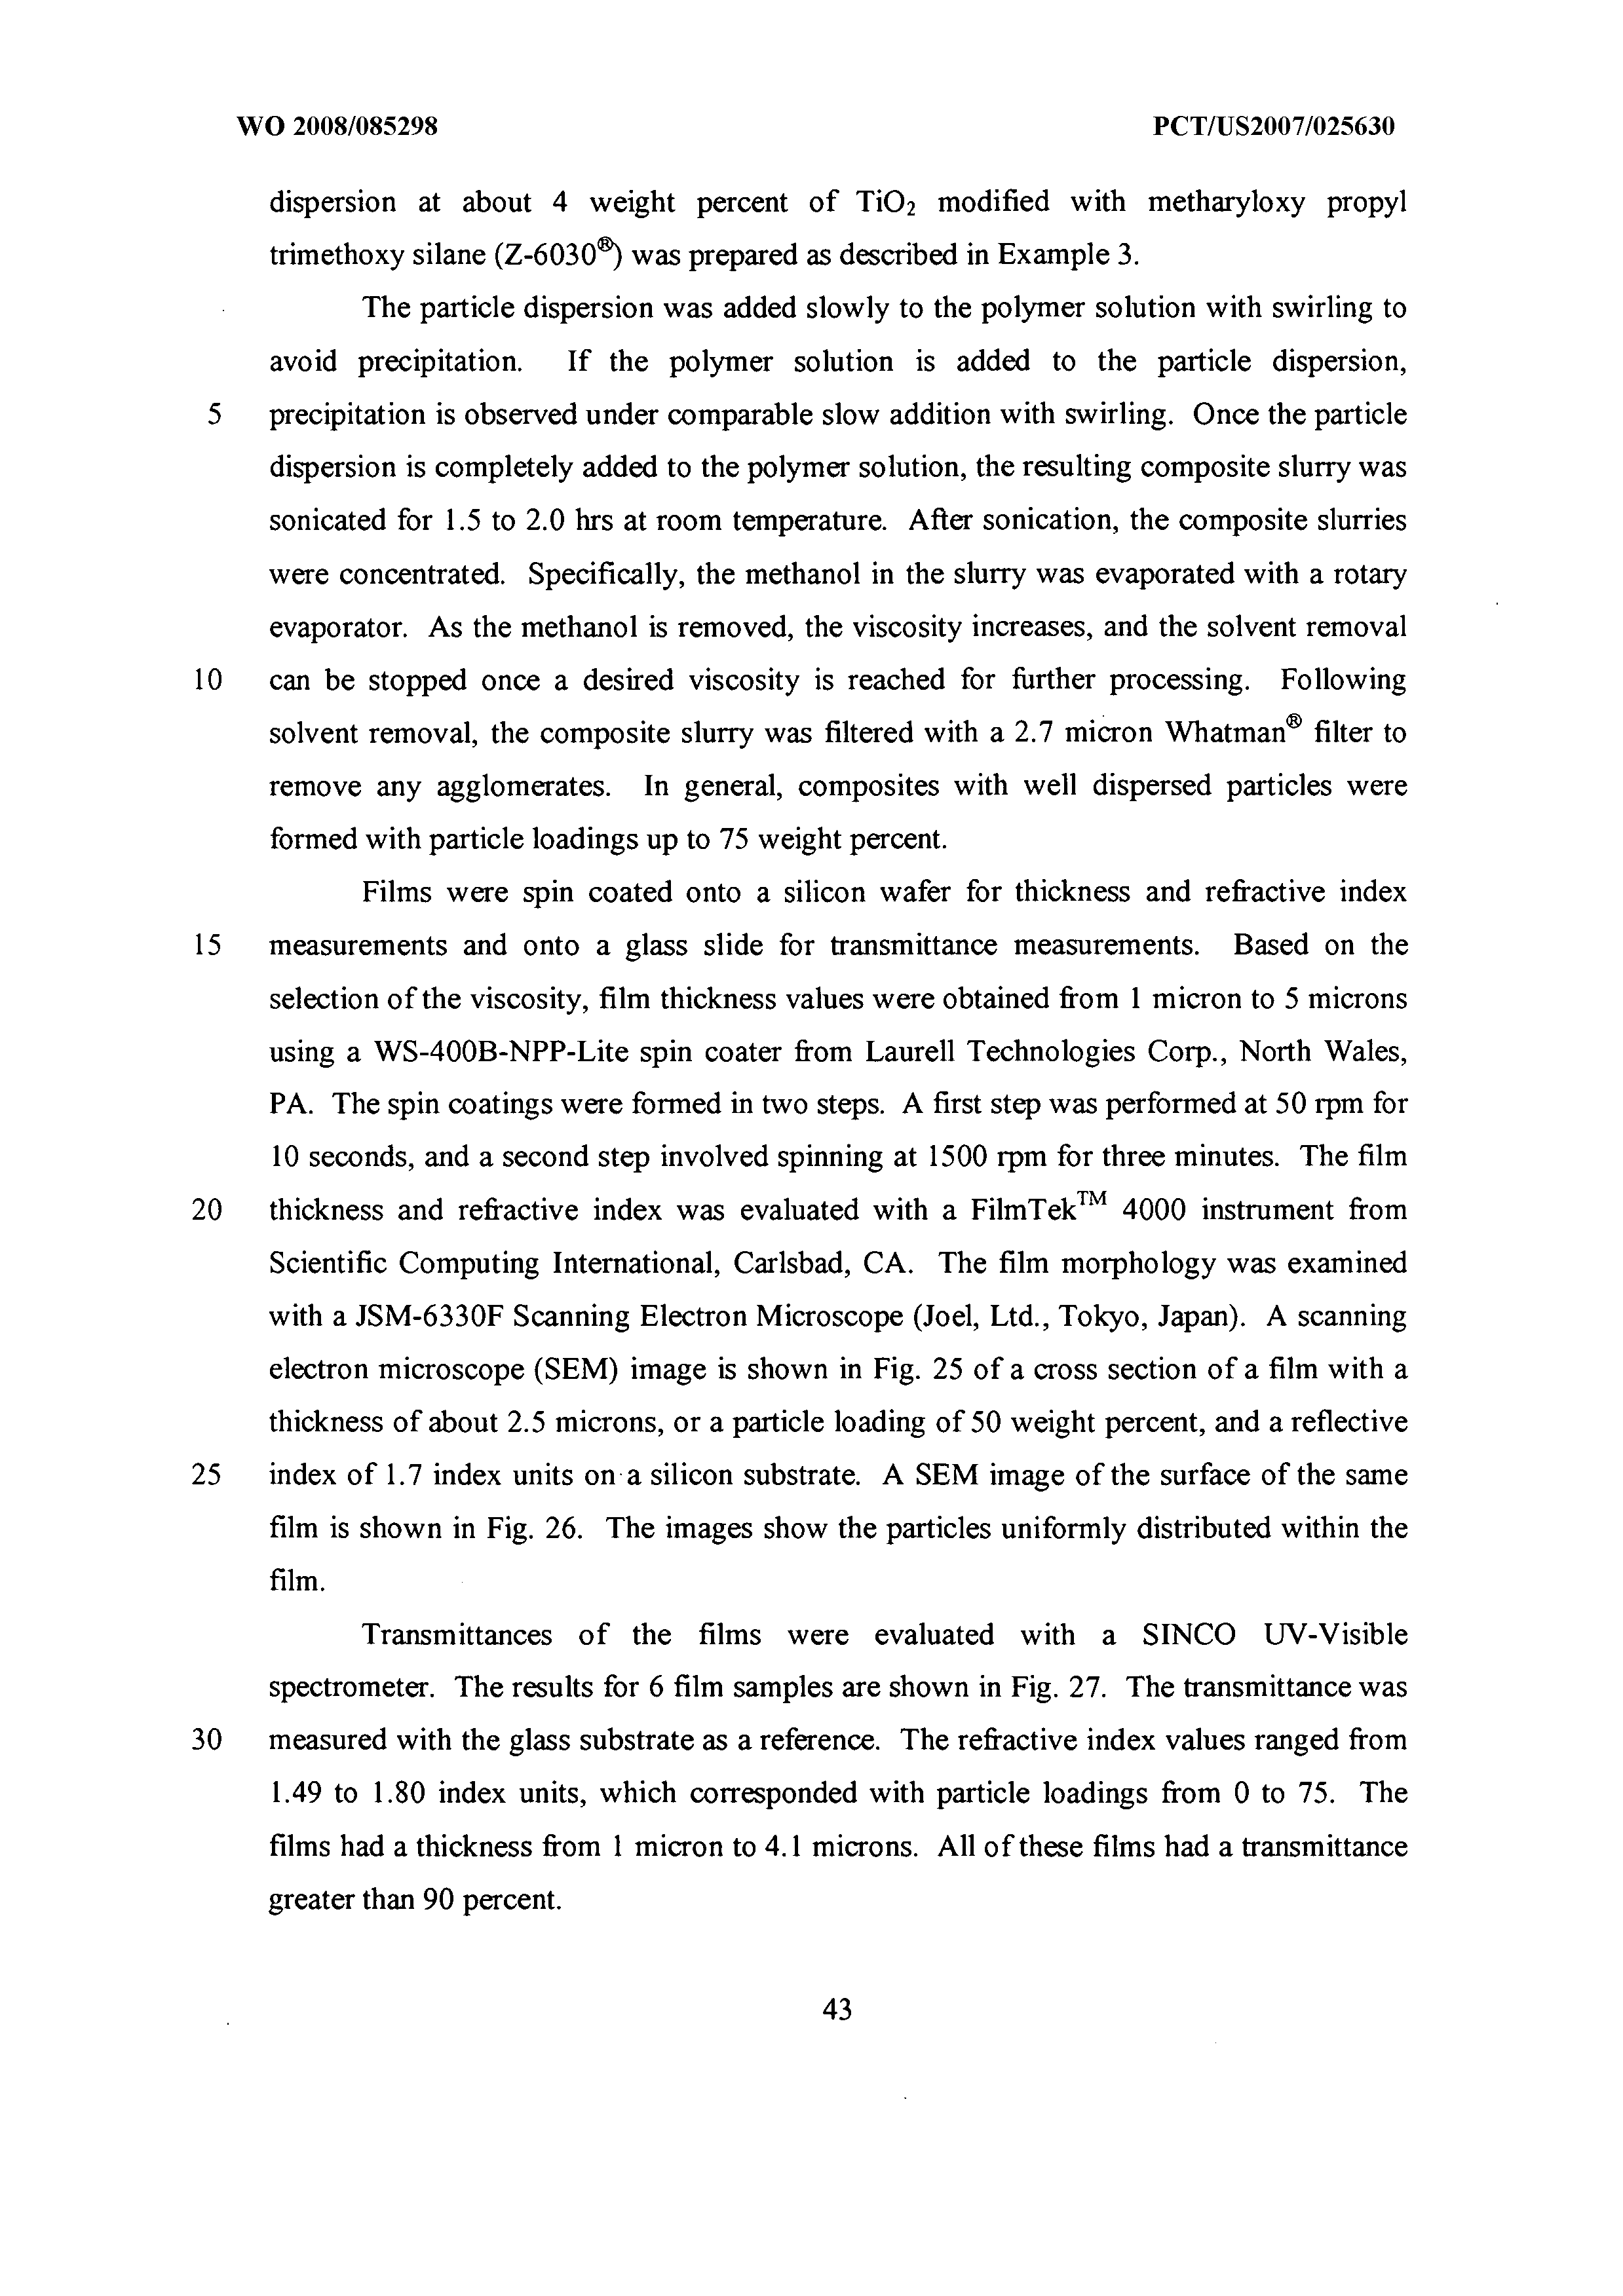 WO 2008/085298 A1 - Composites Of Polymers And Metal/metalloid Oxide